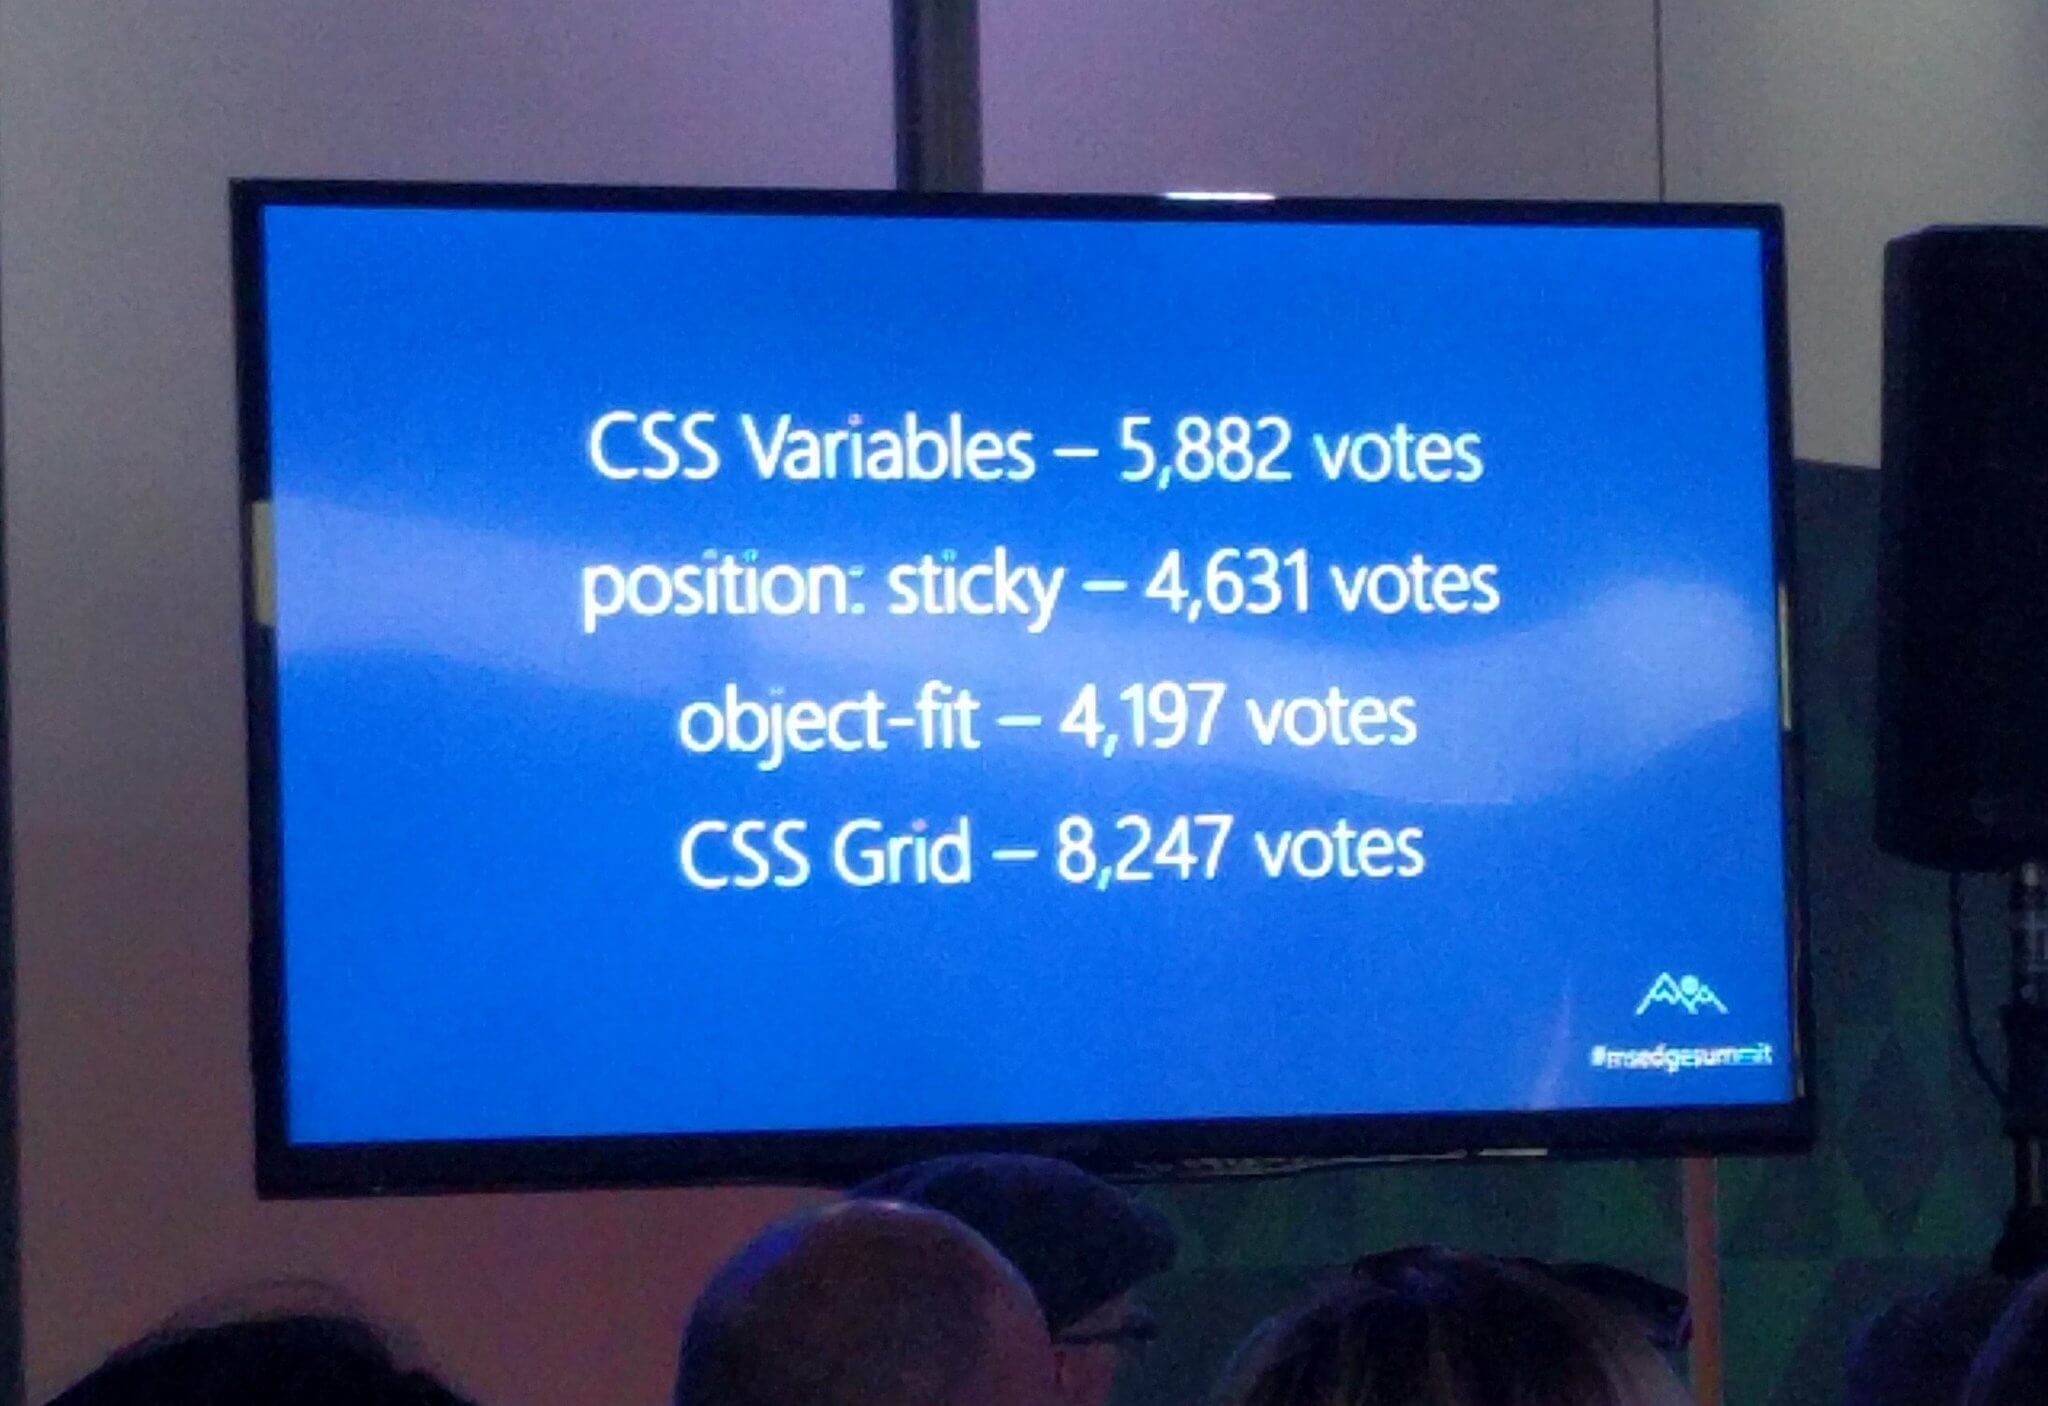 CSS variables — 5,882 votes. position: sticky — 4,631 votes. object-fit — 4,197 votes. CSS grid — 8,247 votes.